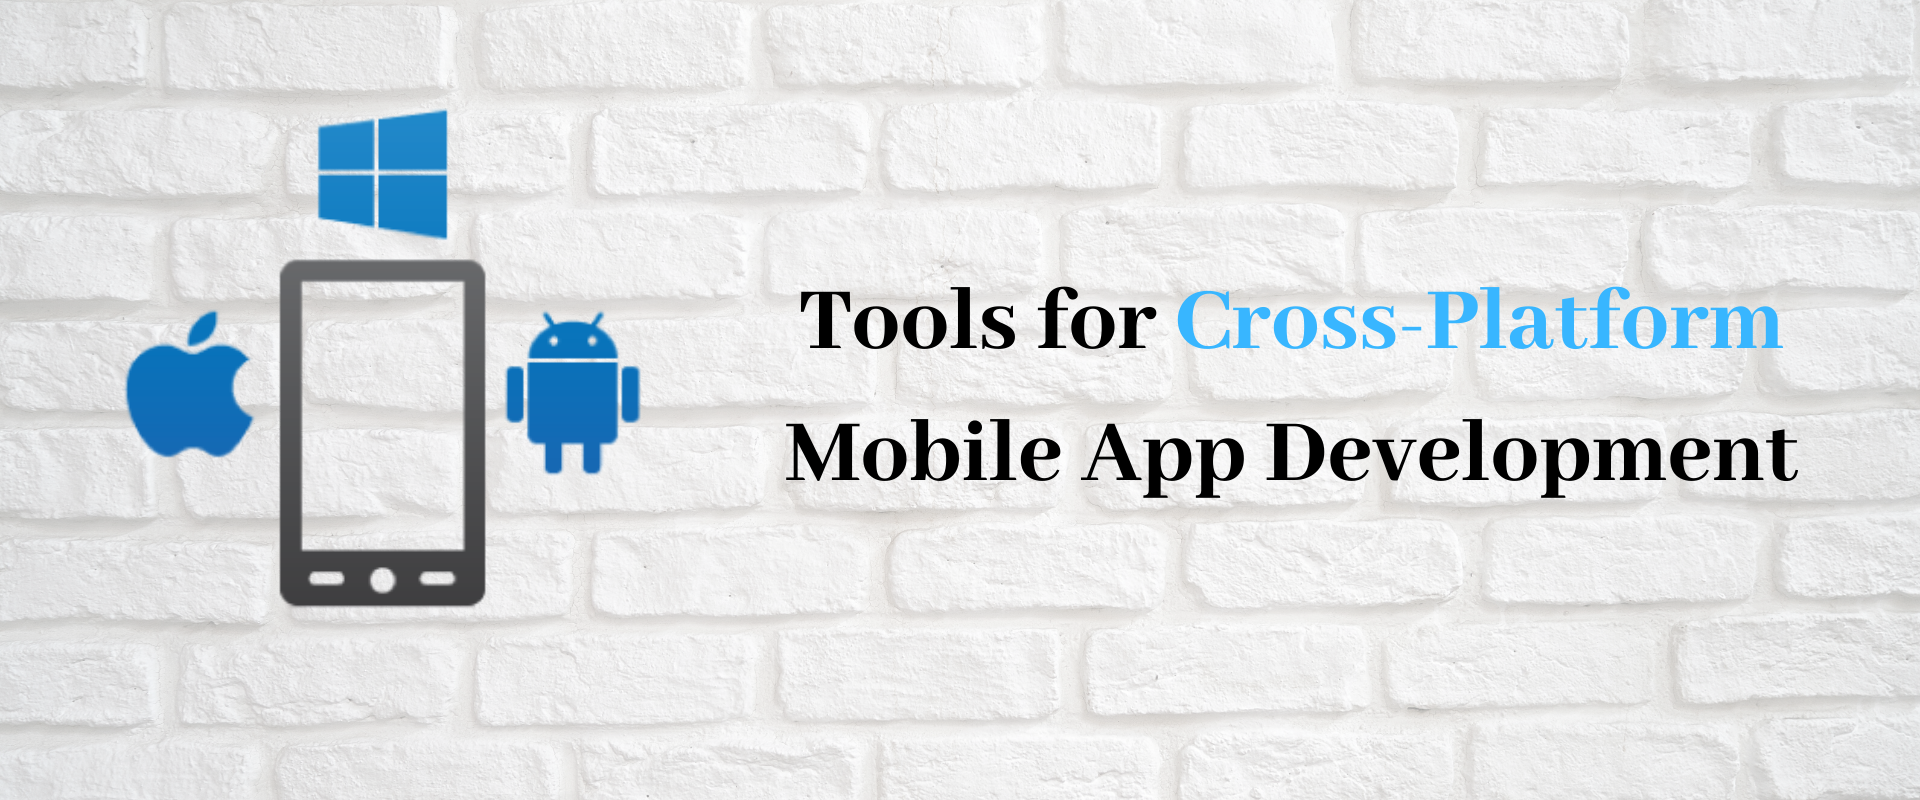 9 Powerful Tools for Cross-Platform Mobile App Development